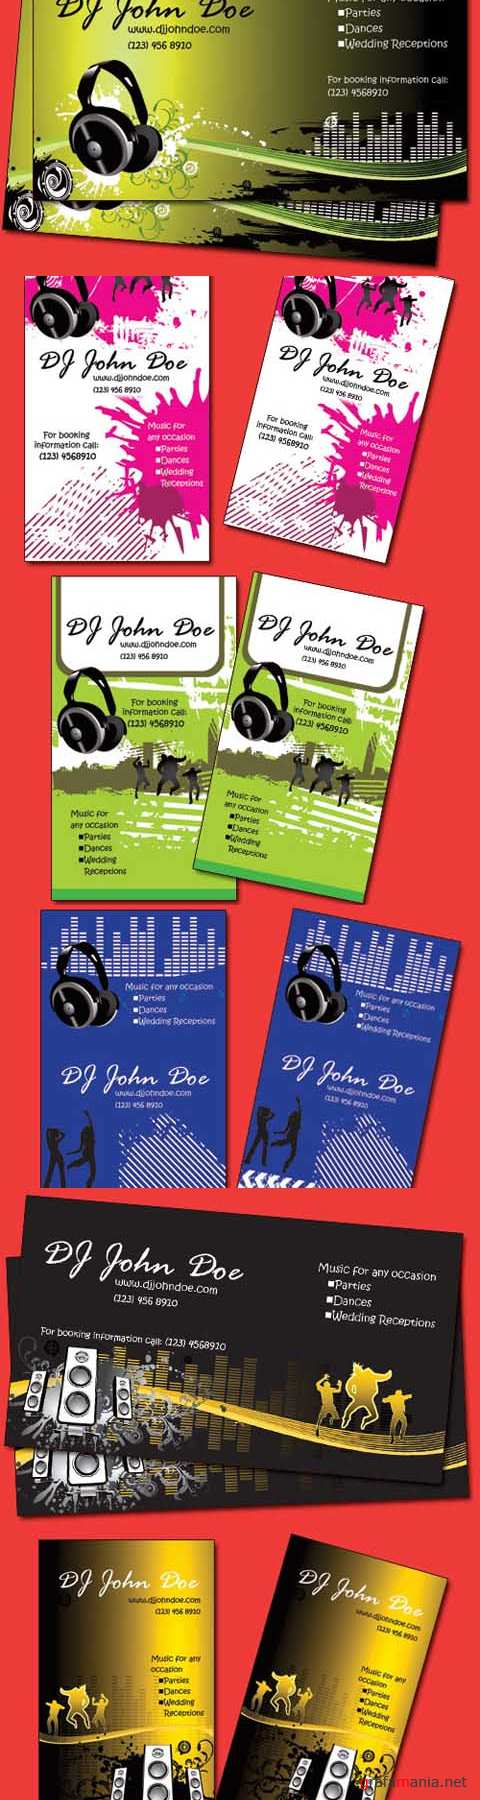 Dj Music Business Cards Pack psd for Photoshop